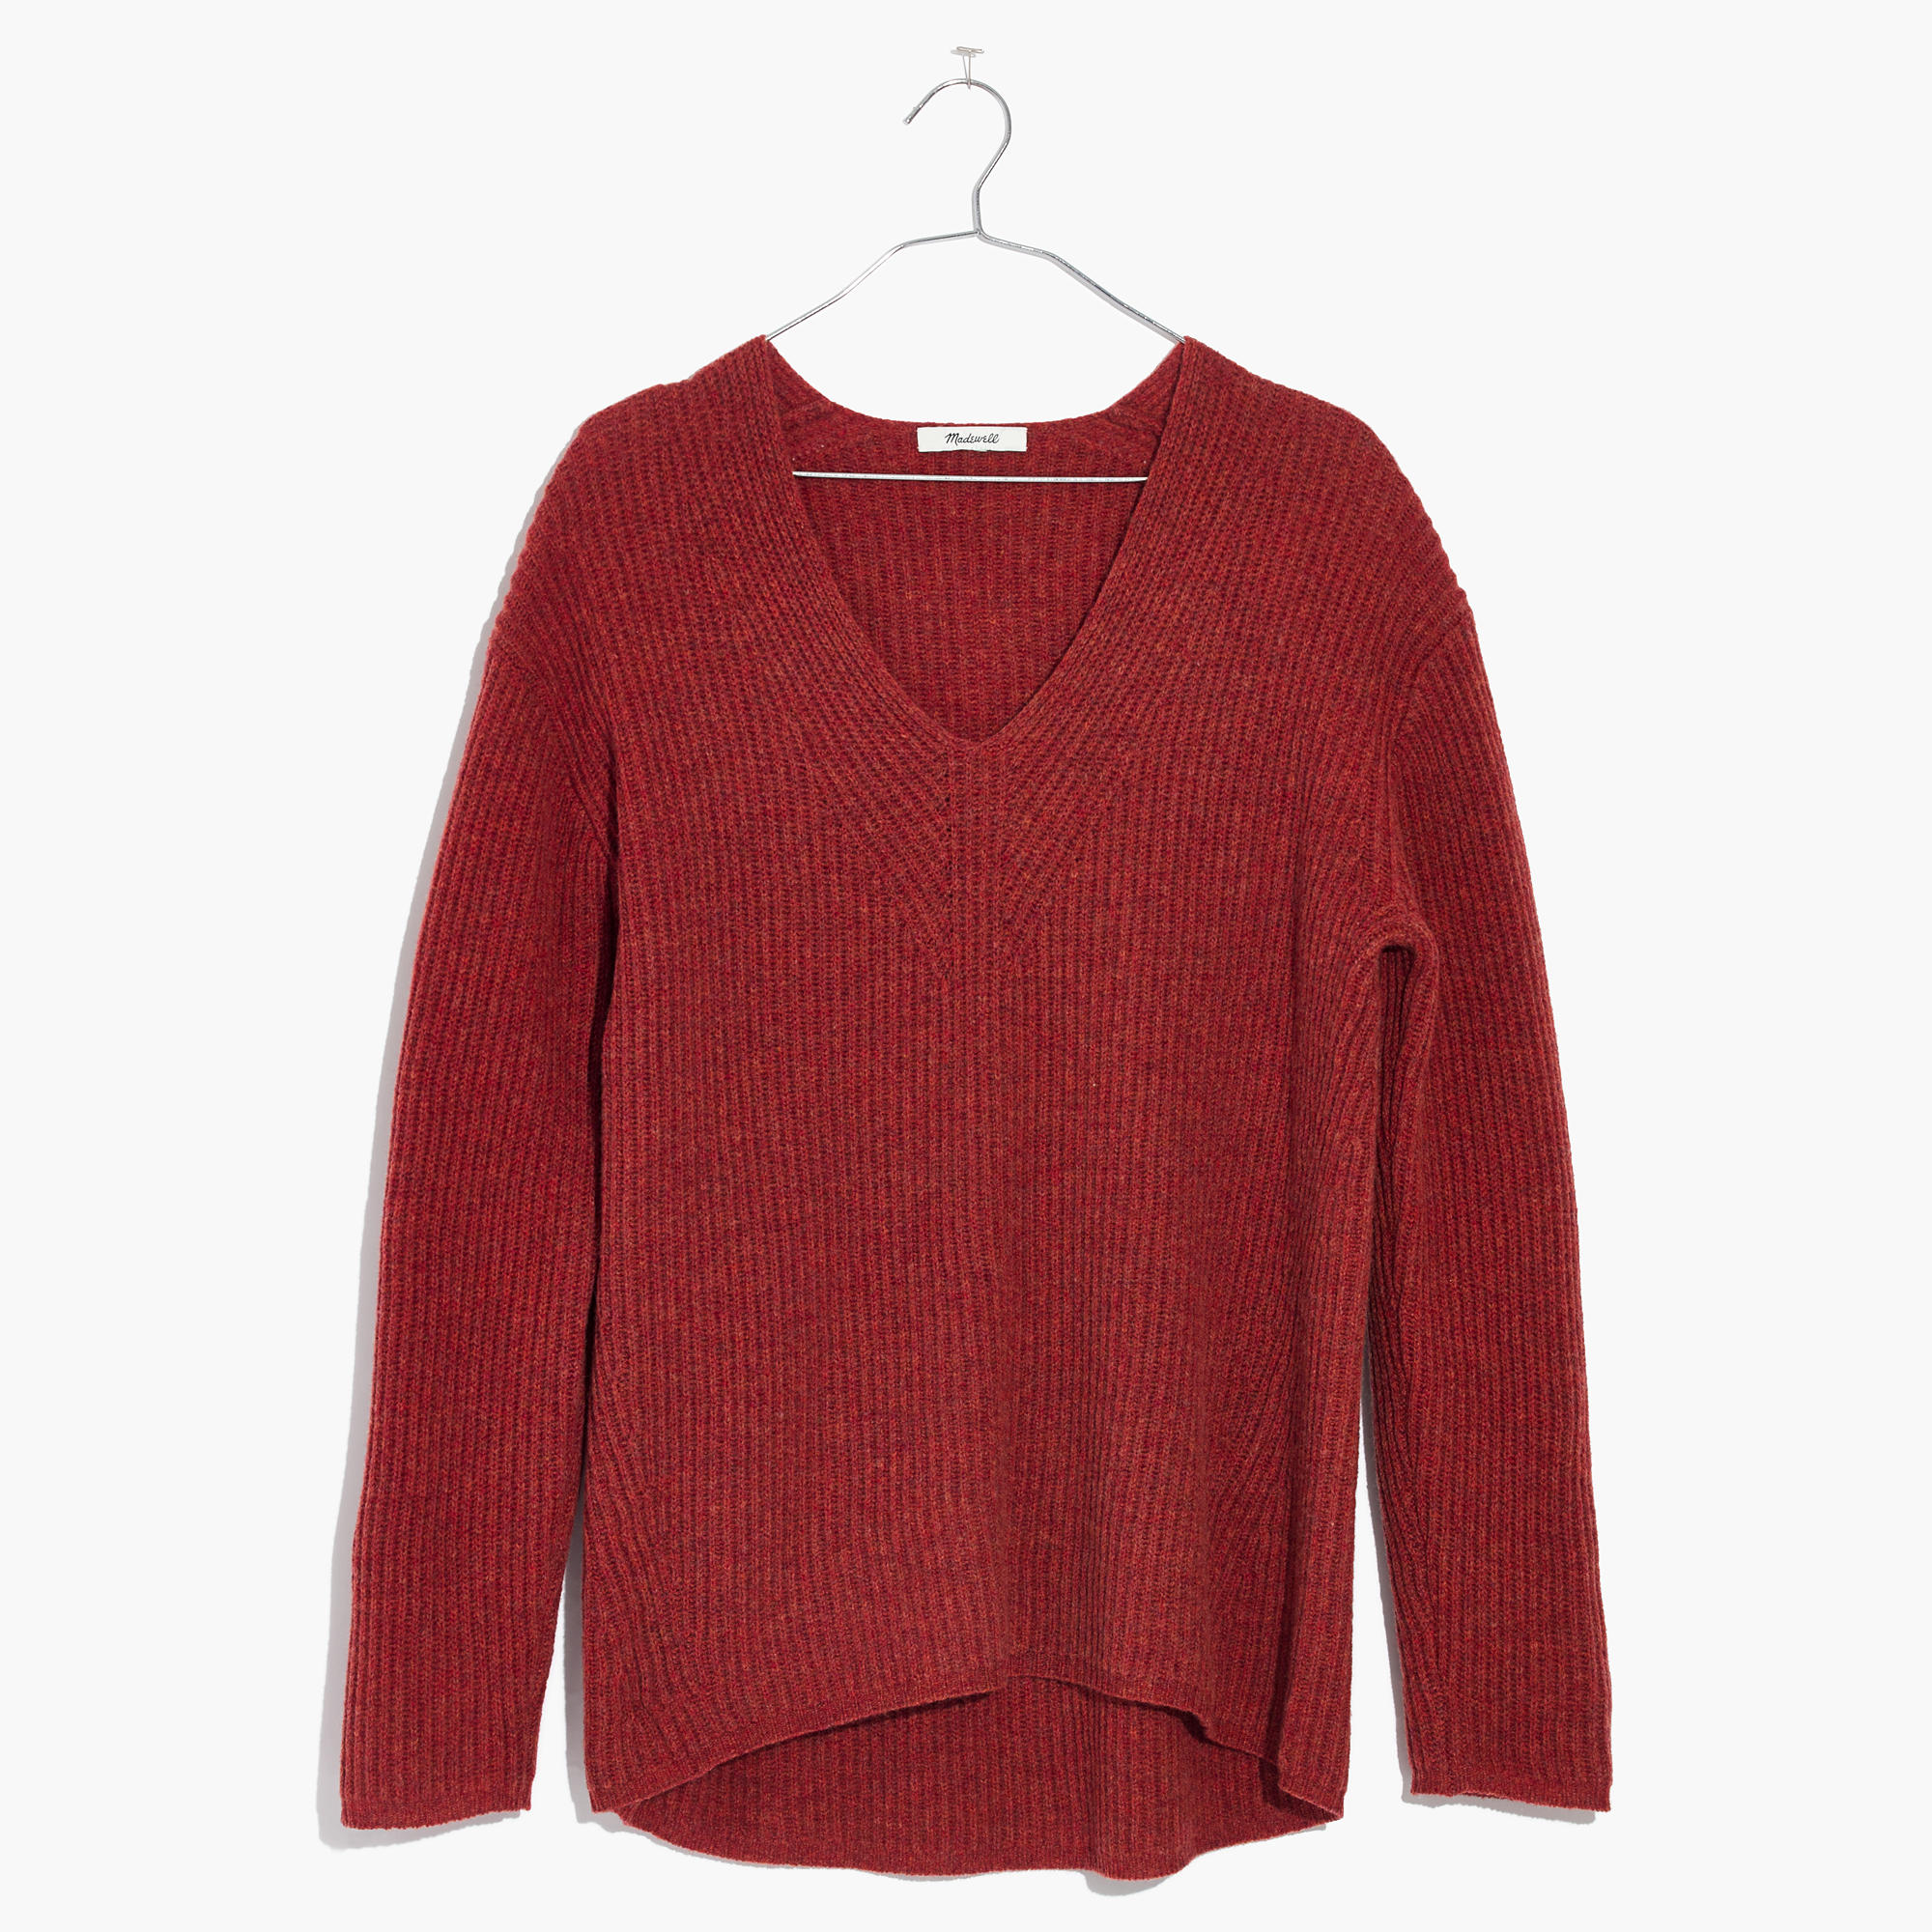 Woodside Pullover Sweater : shopmadewell pullovers | Madewell